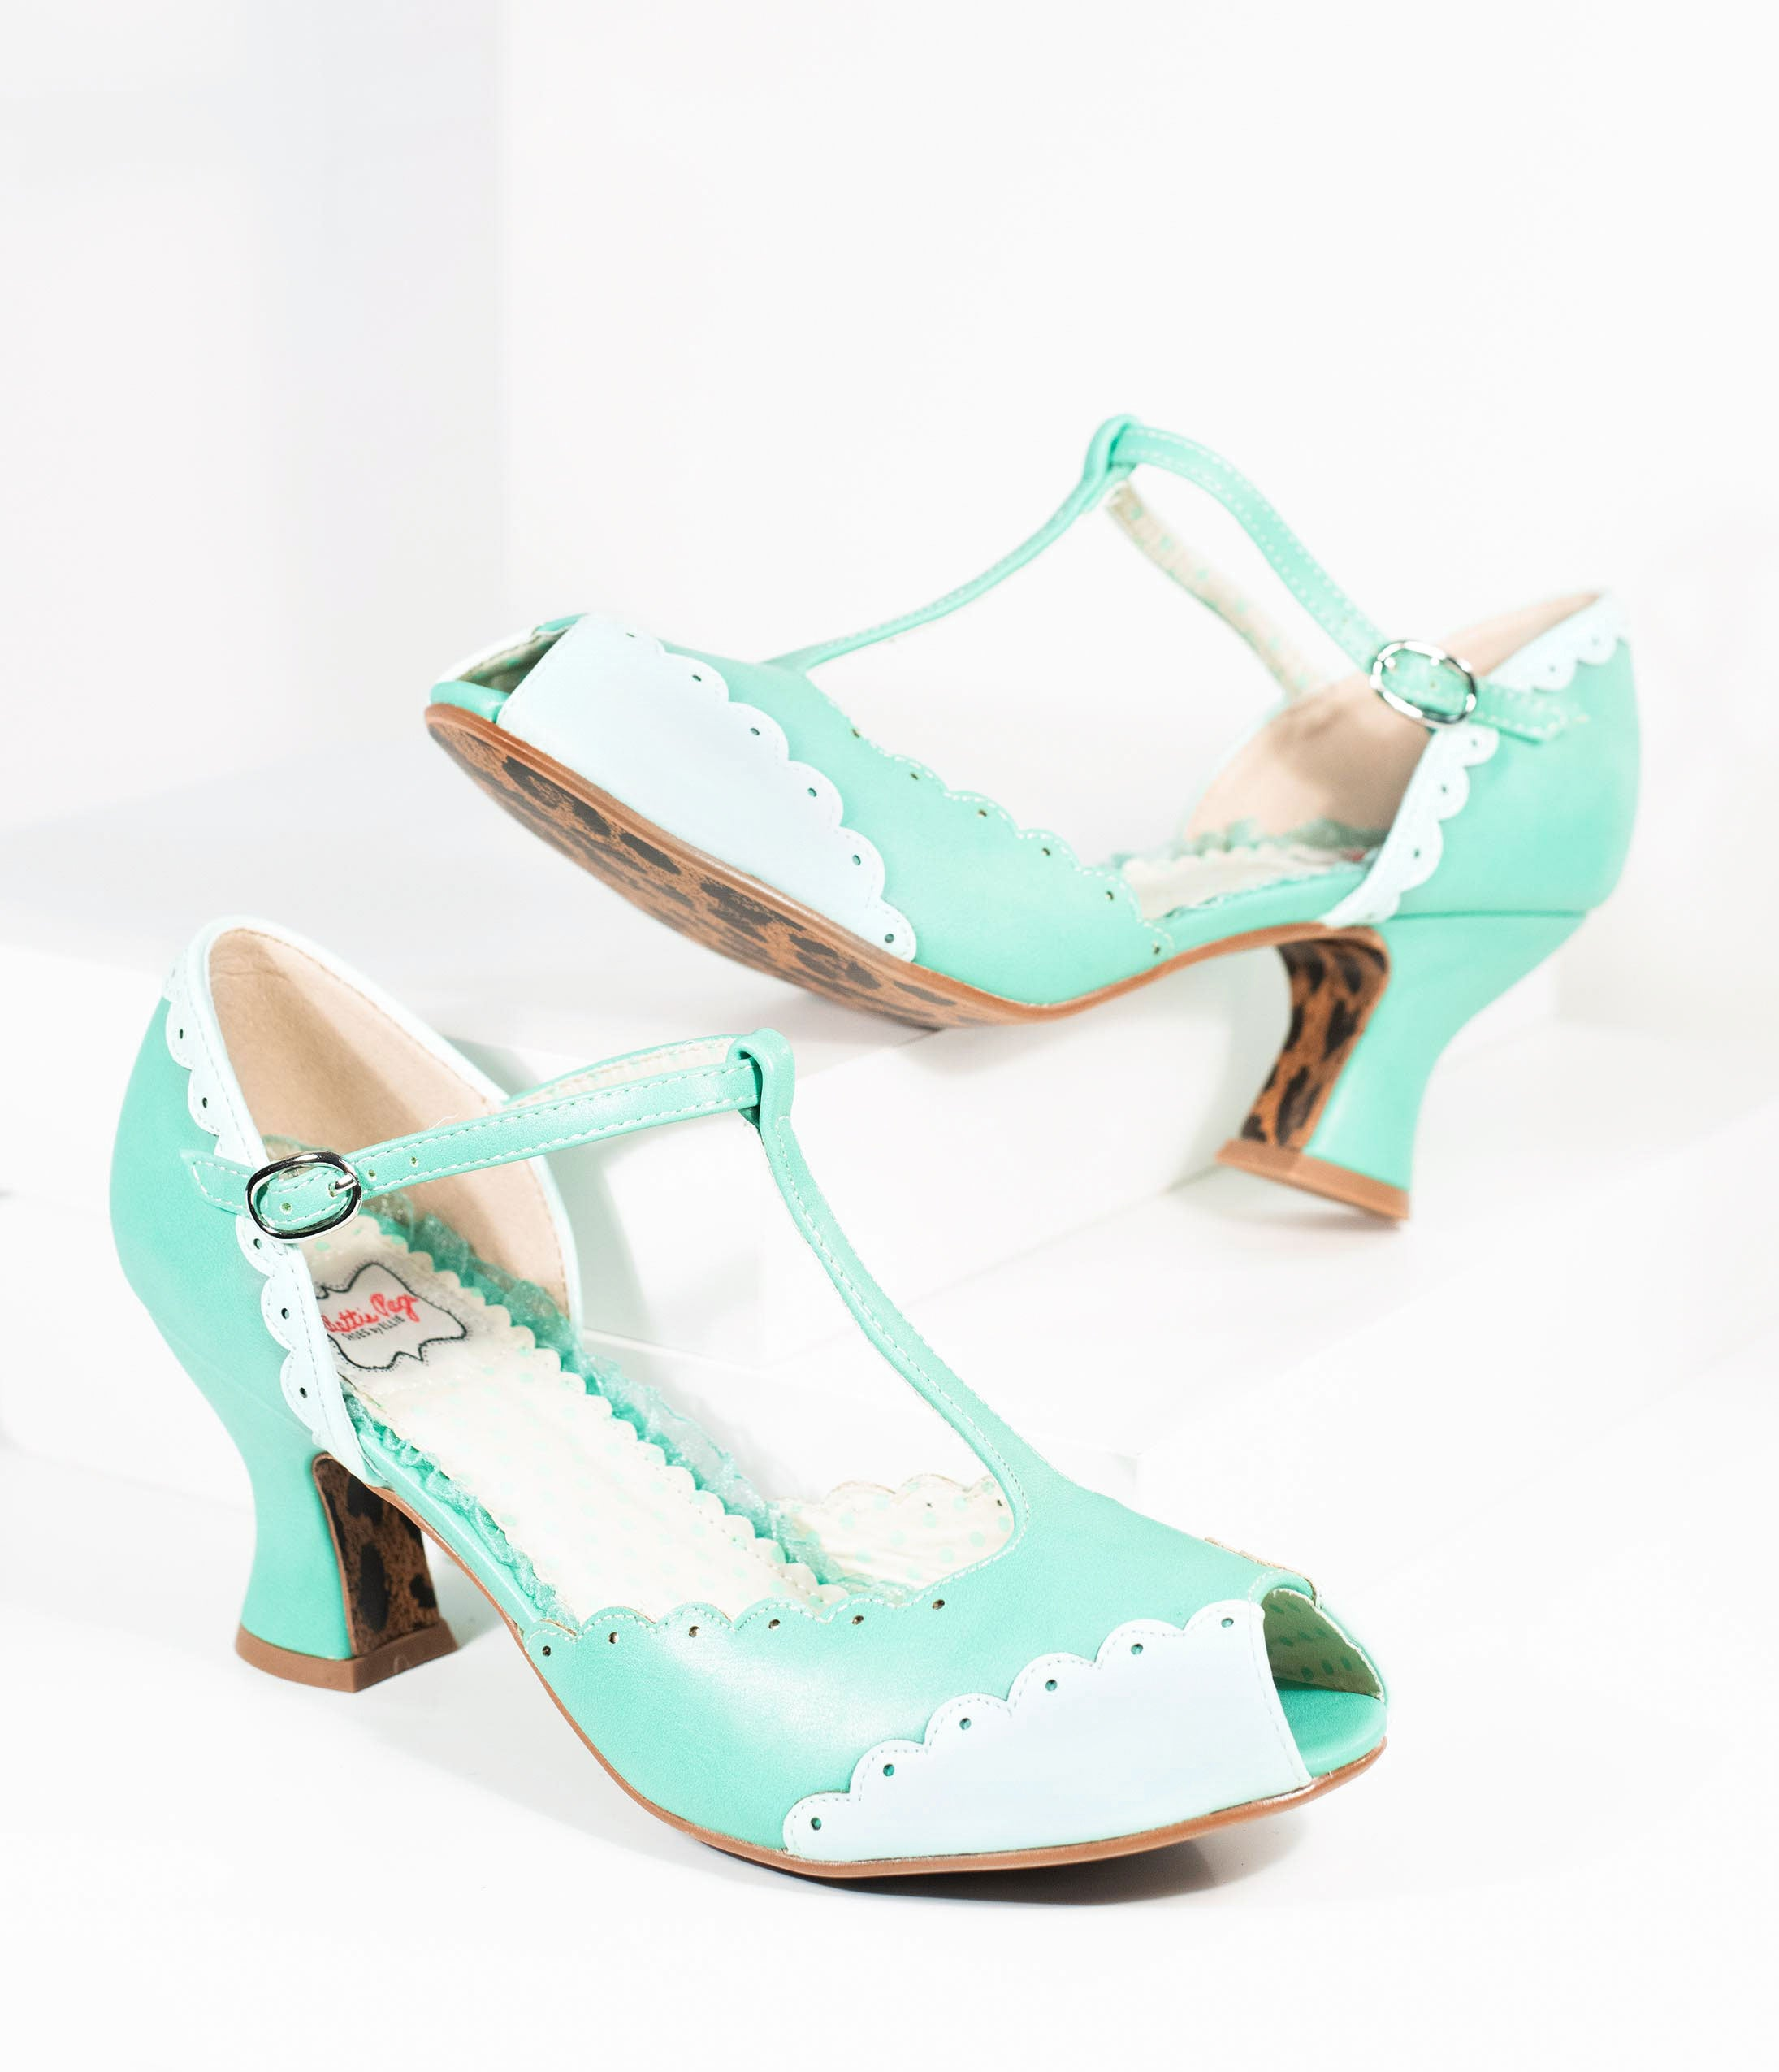 Rockabilly Shoes- Heels, Pumps, Boots, Flats Bettie Page 1940S Turquoise Mint Scalloped Peep Toe T-Strap Carlie Heels $82.00 AT vintagedancer.com